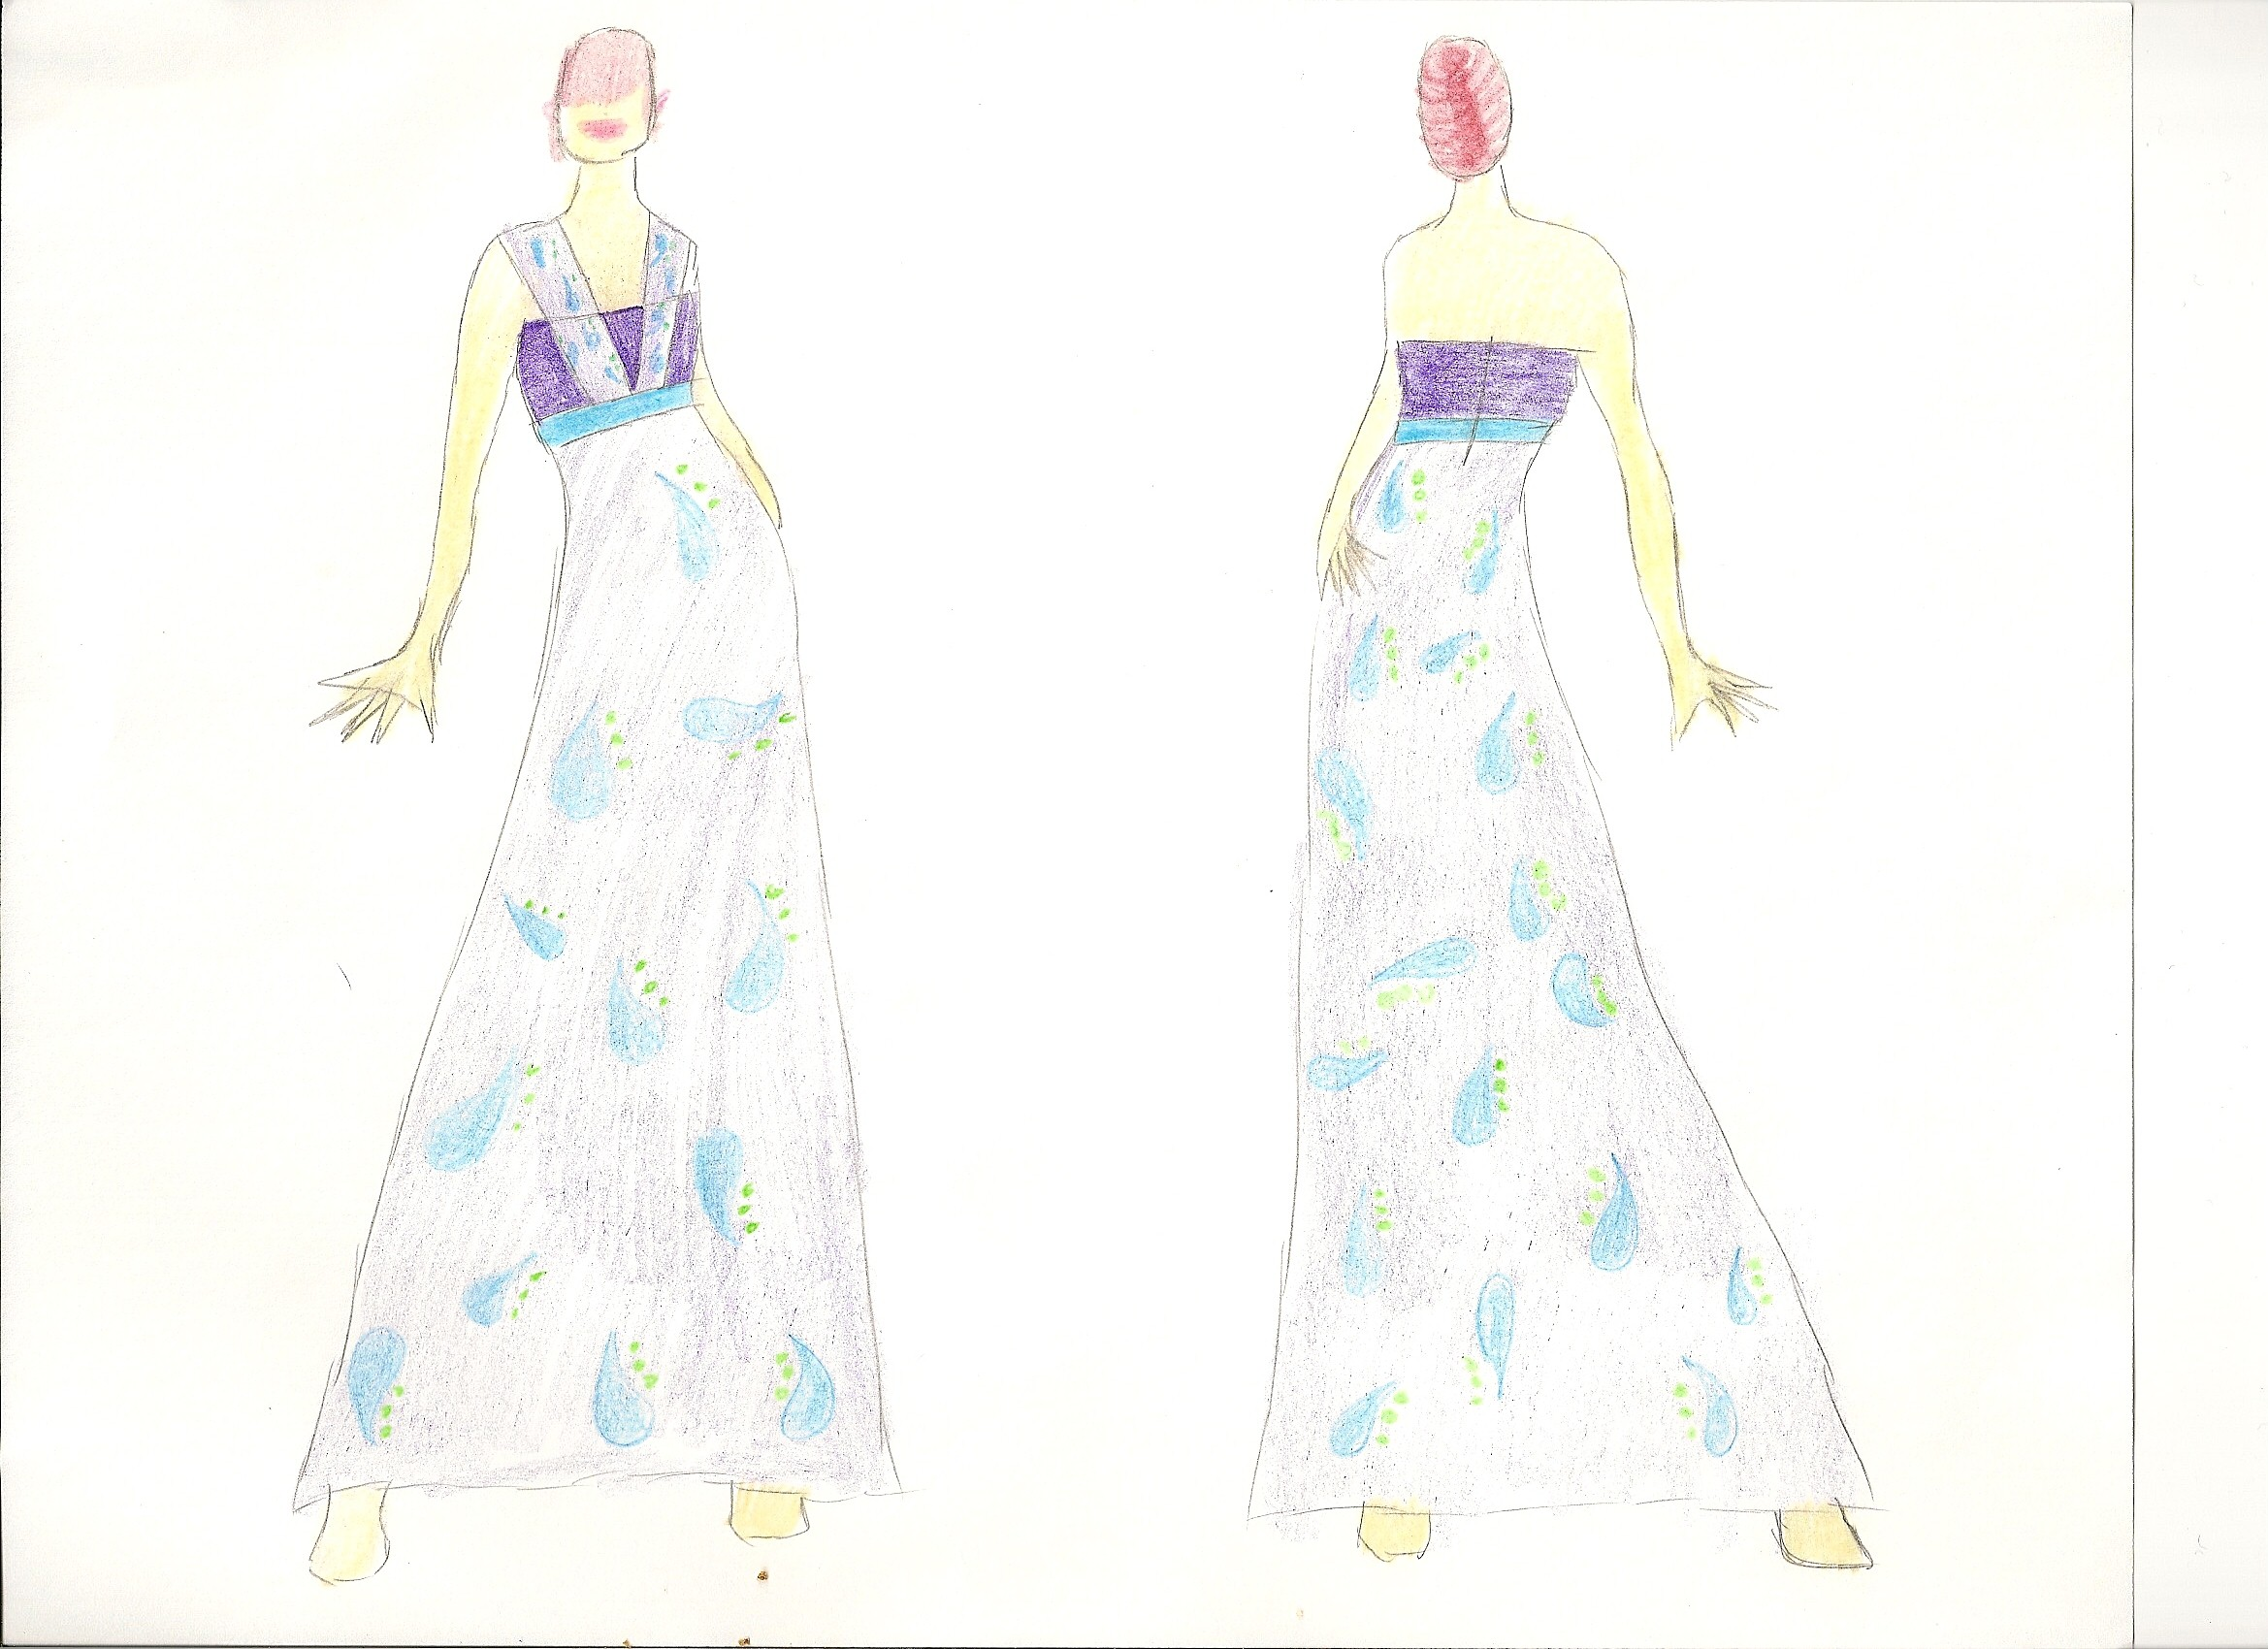 pin sketches of dresses on models on pinterest